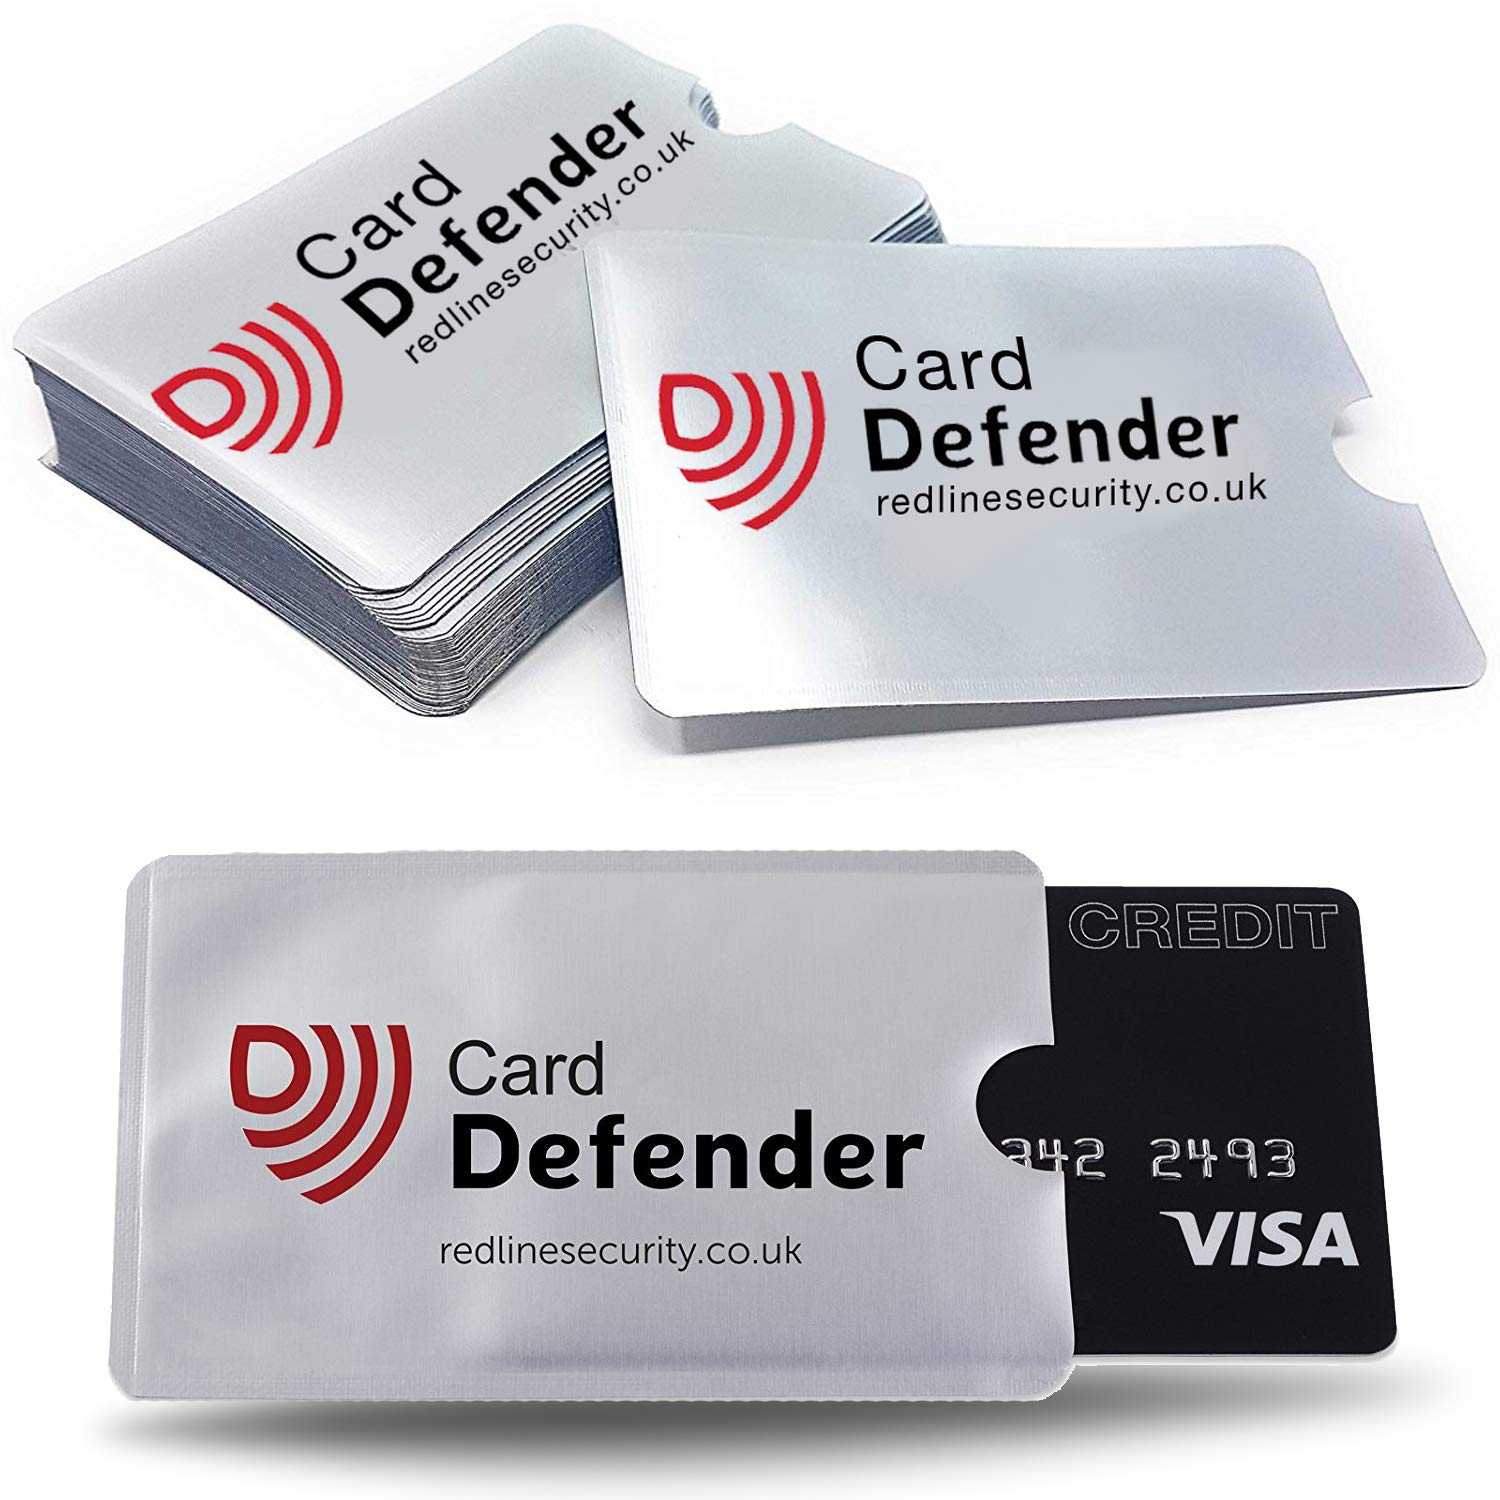 20 x Card Defenders - Police Preferred Specification RFID Blocking Sleeves for Protecting Your Contactless Card - Pack of 20 Solon Security